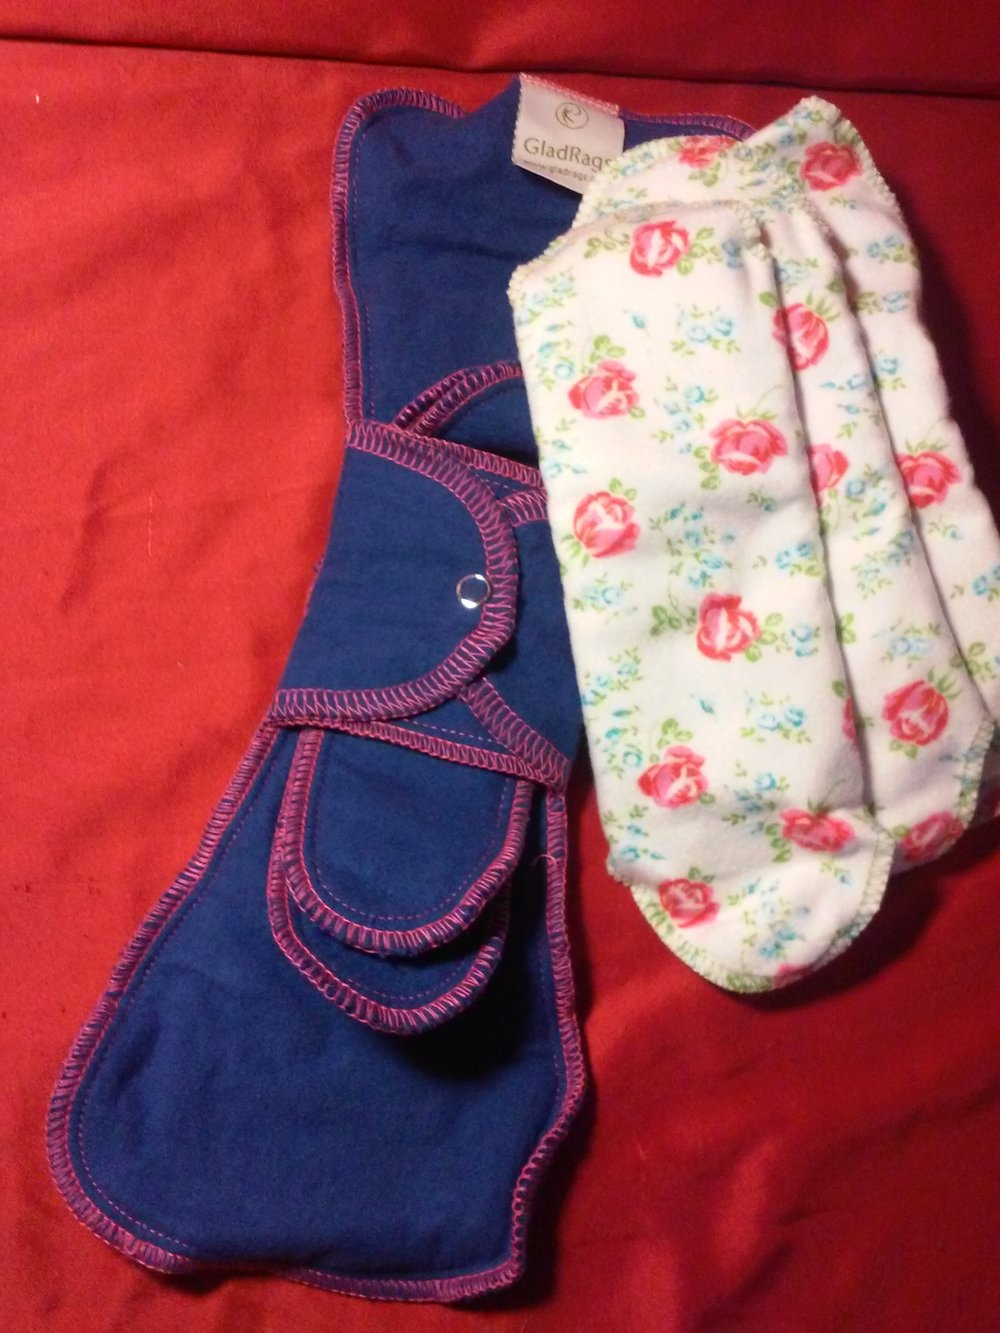 Gladrags Day & Night Reusable Cloth Pads